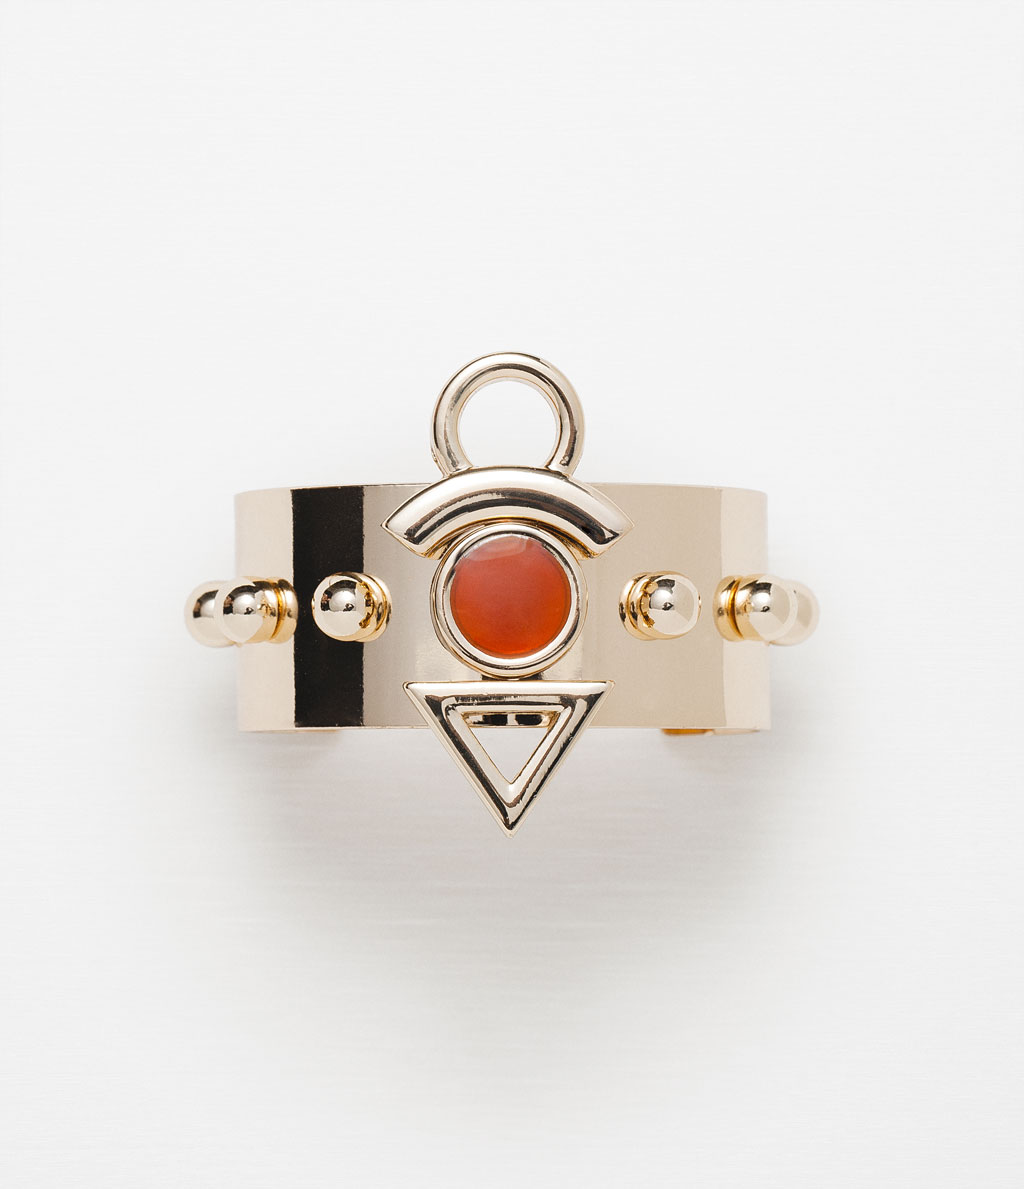 http://www.zara.com/ch/en/woman/accessories/jewellery/adjustable-armband-bracelet-with-geometric-piece-c499007p2853591.html